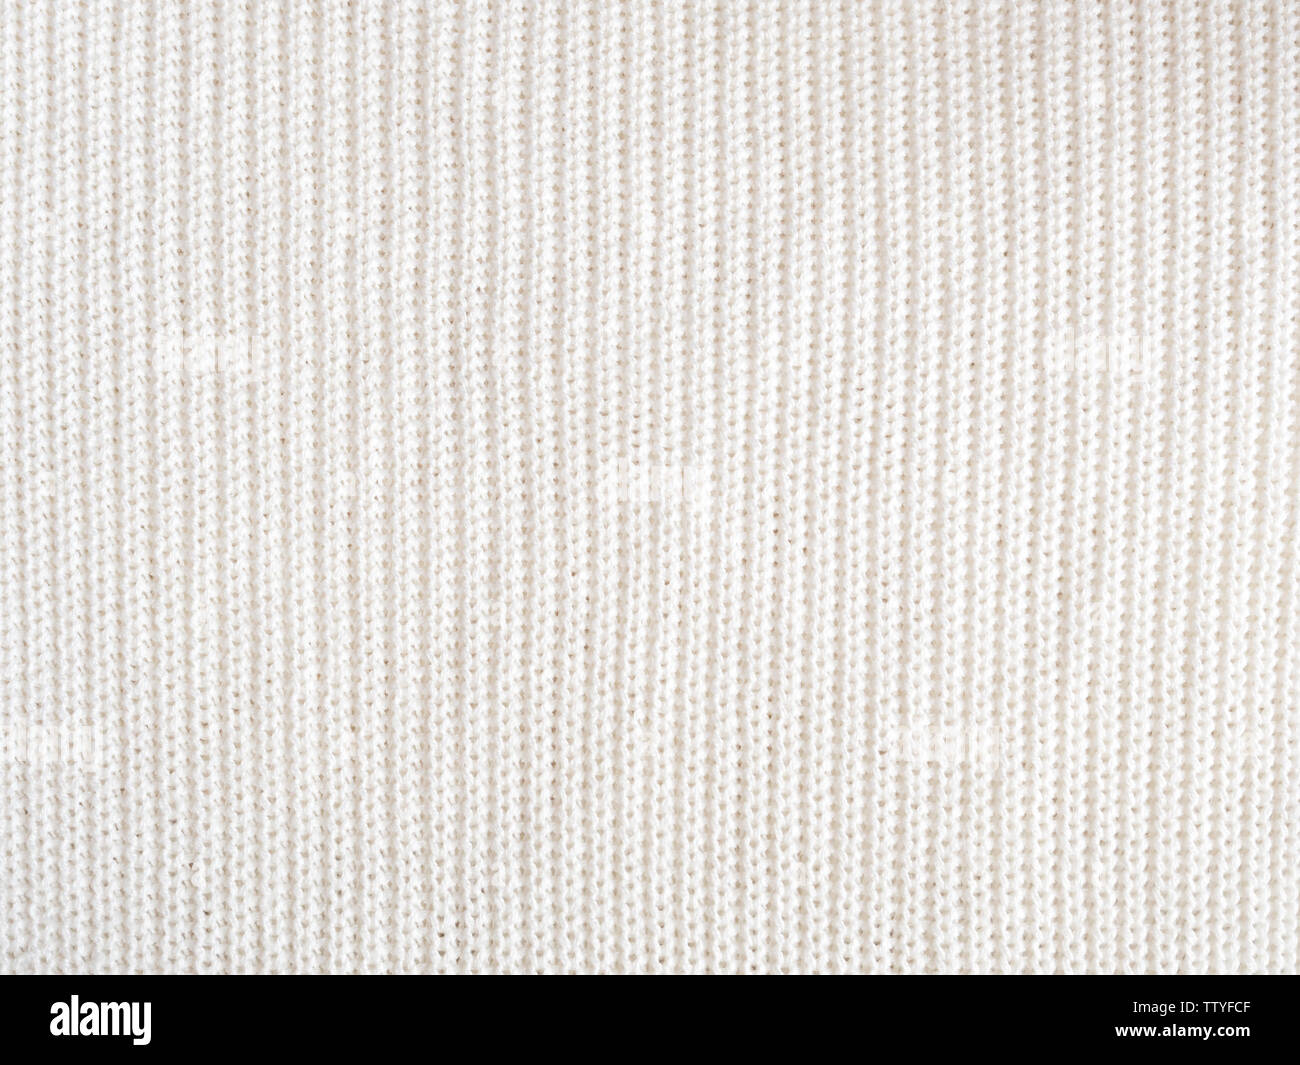 b5d5135154403d Knitted loops background. Part knitted sweater. Knitted texture. White  Knitted Fabric Texture.